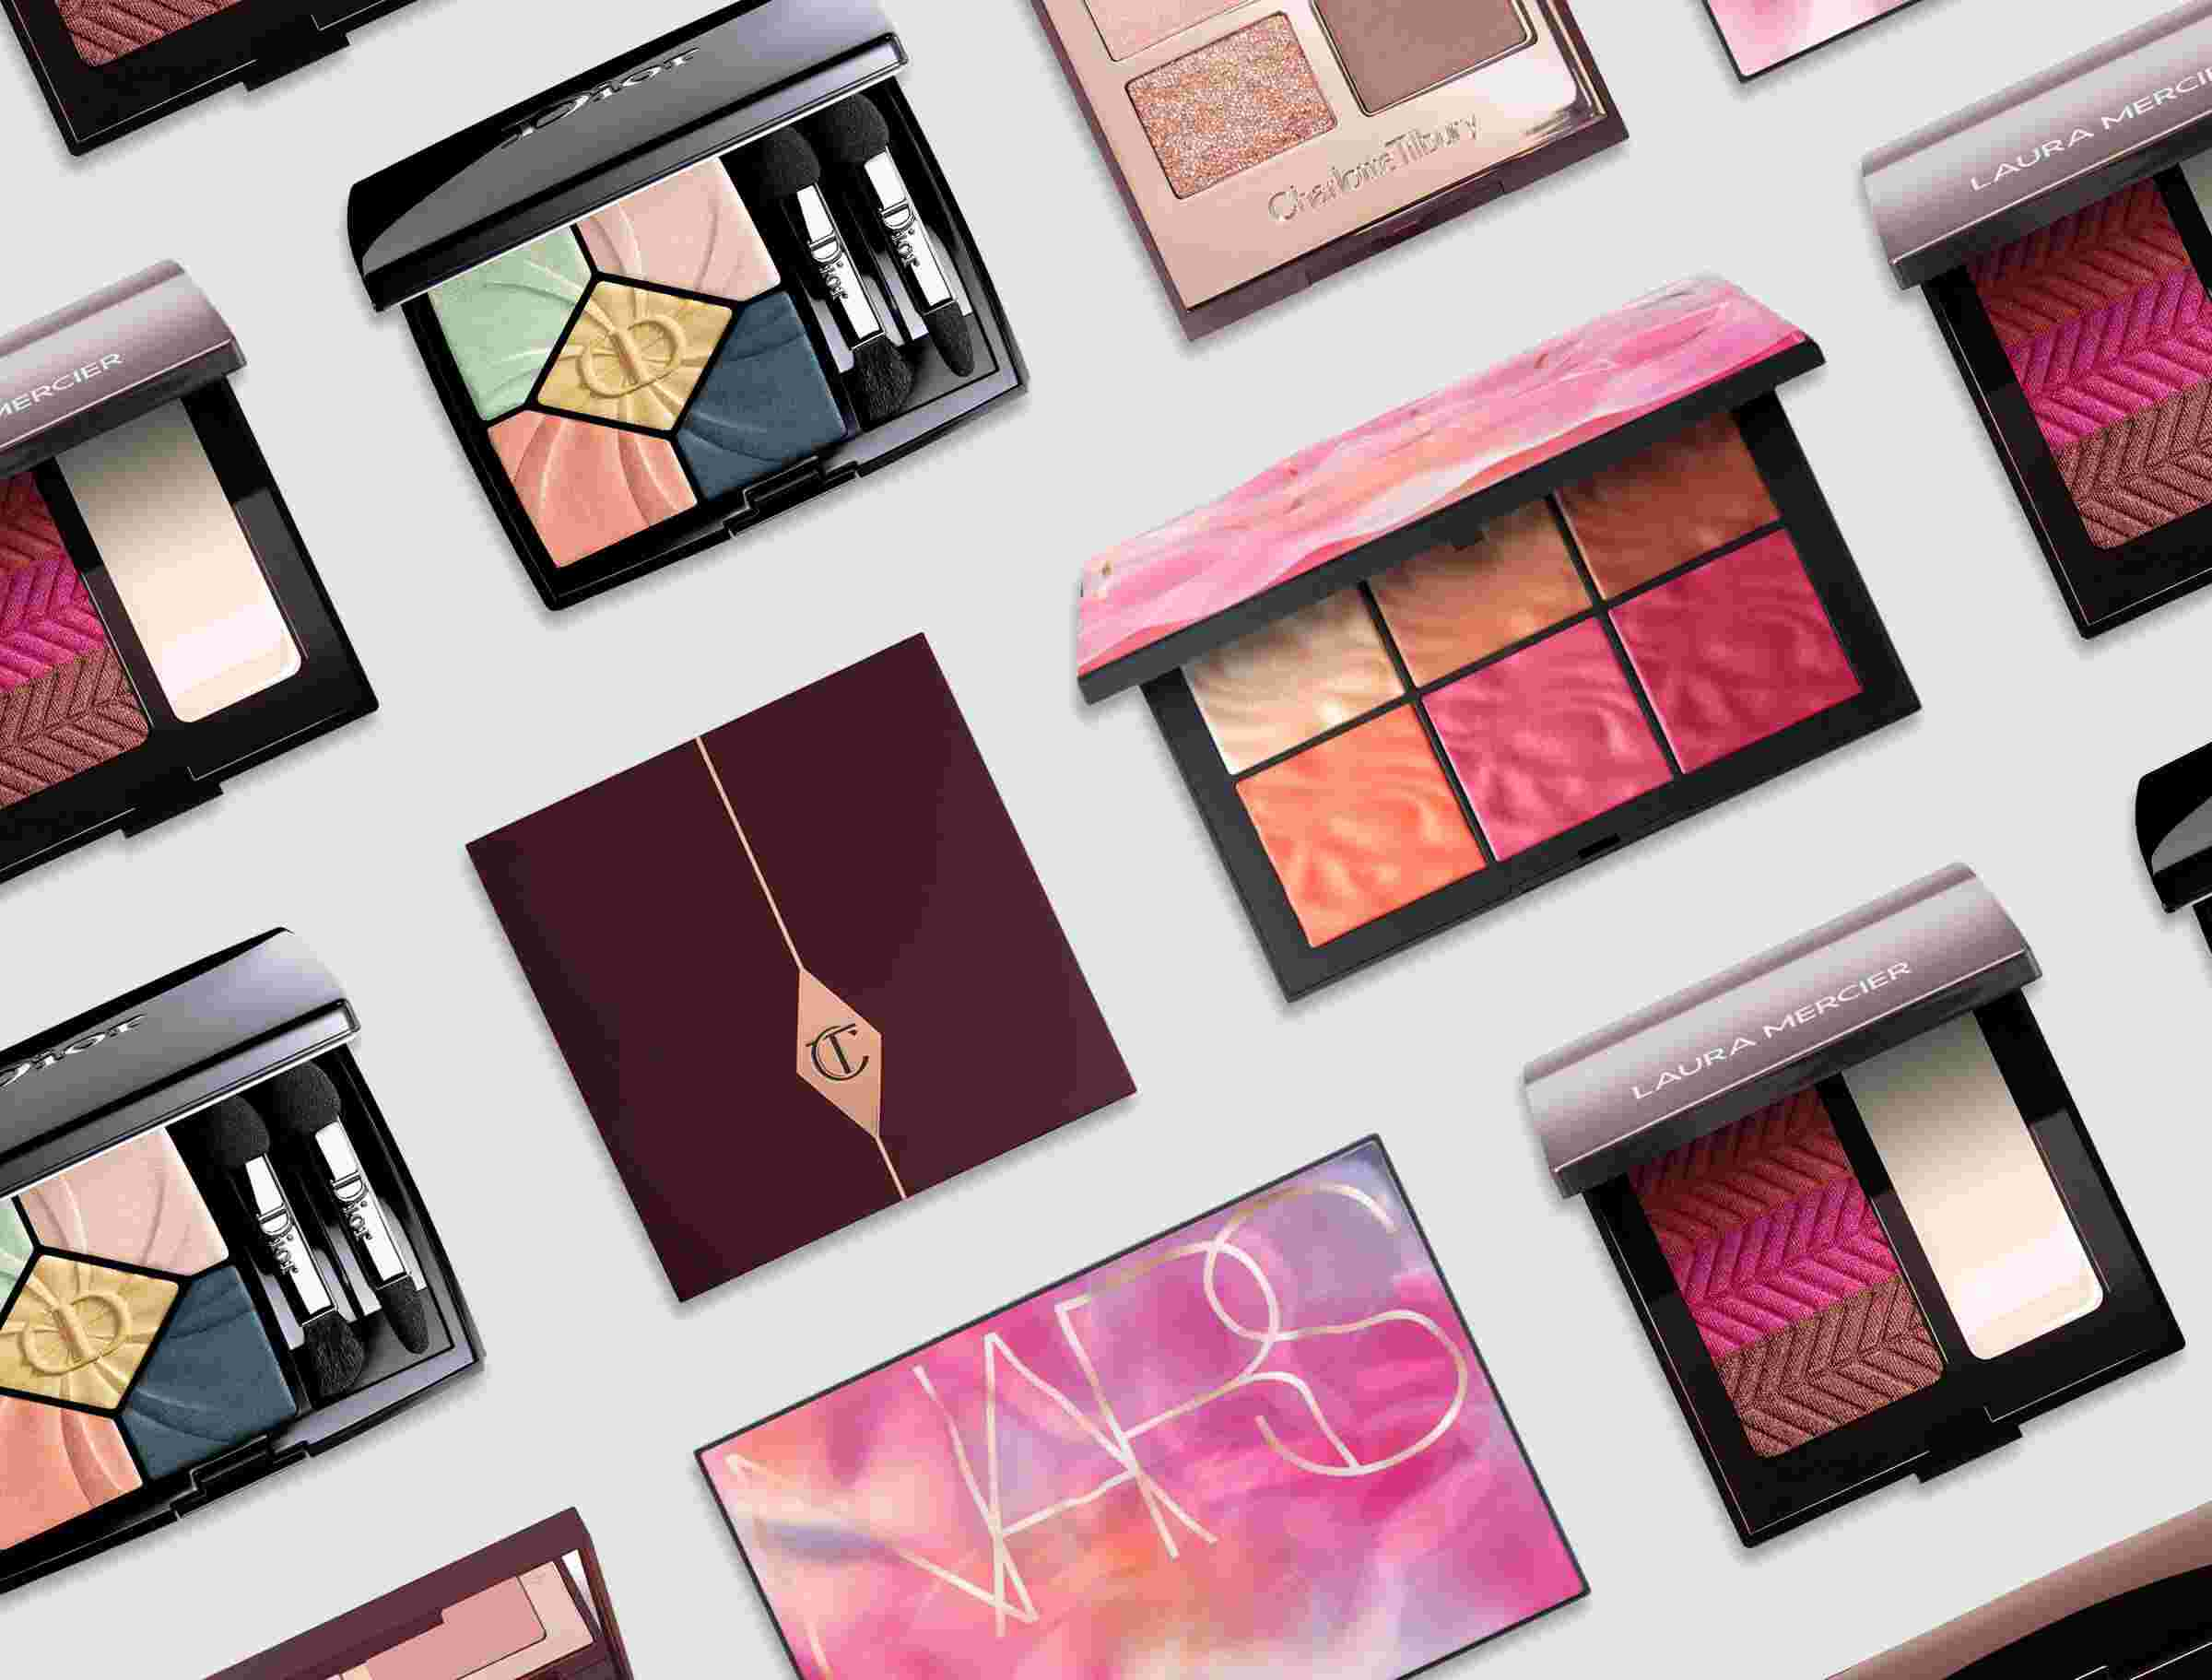 A make-up artist's guide to getting the most from your palette